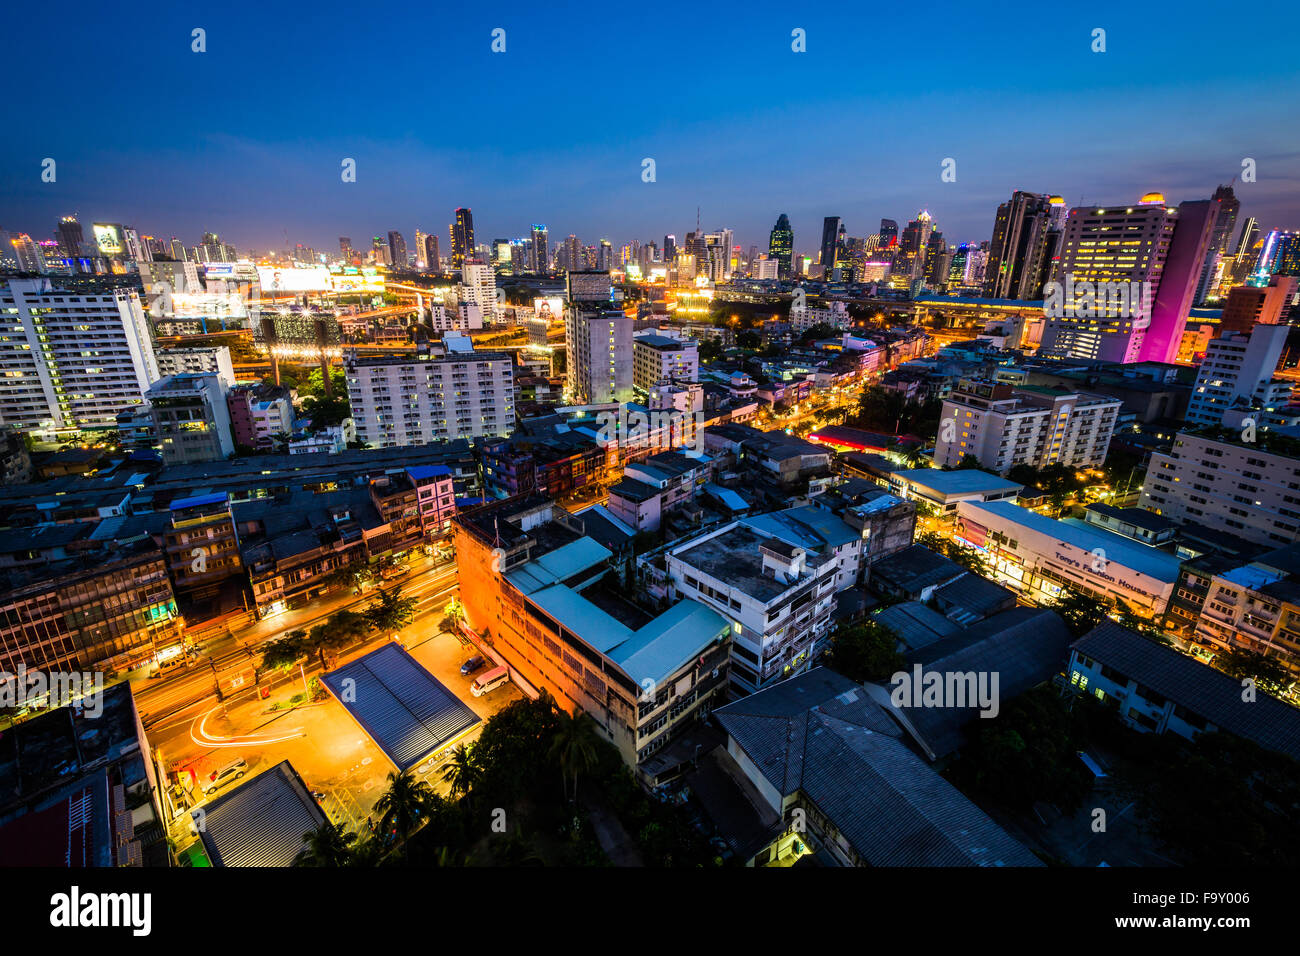 View of the Ratchathewi District at twilight, in Bangkok, Thailand. - Stock Image